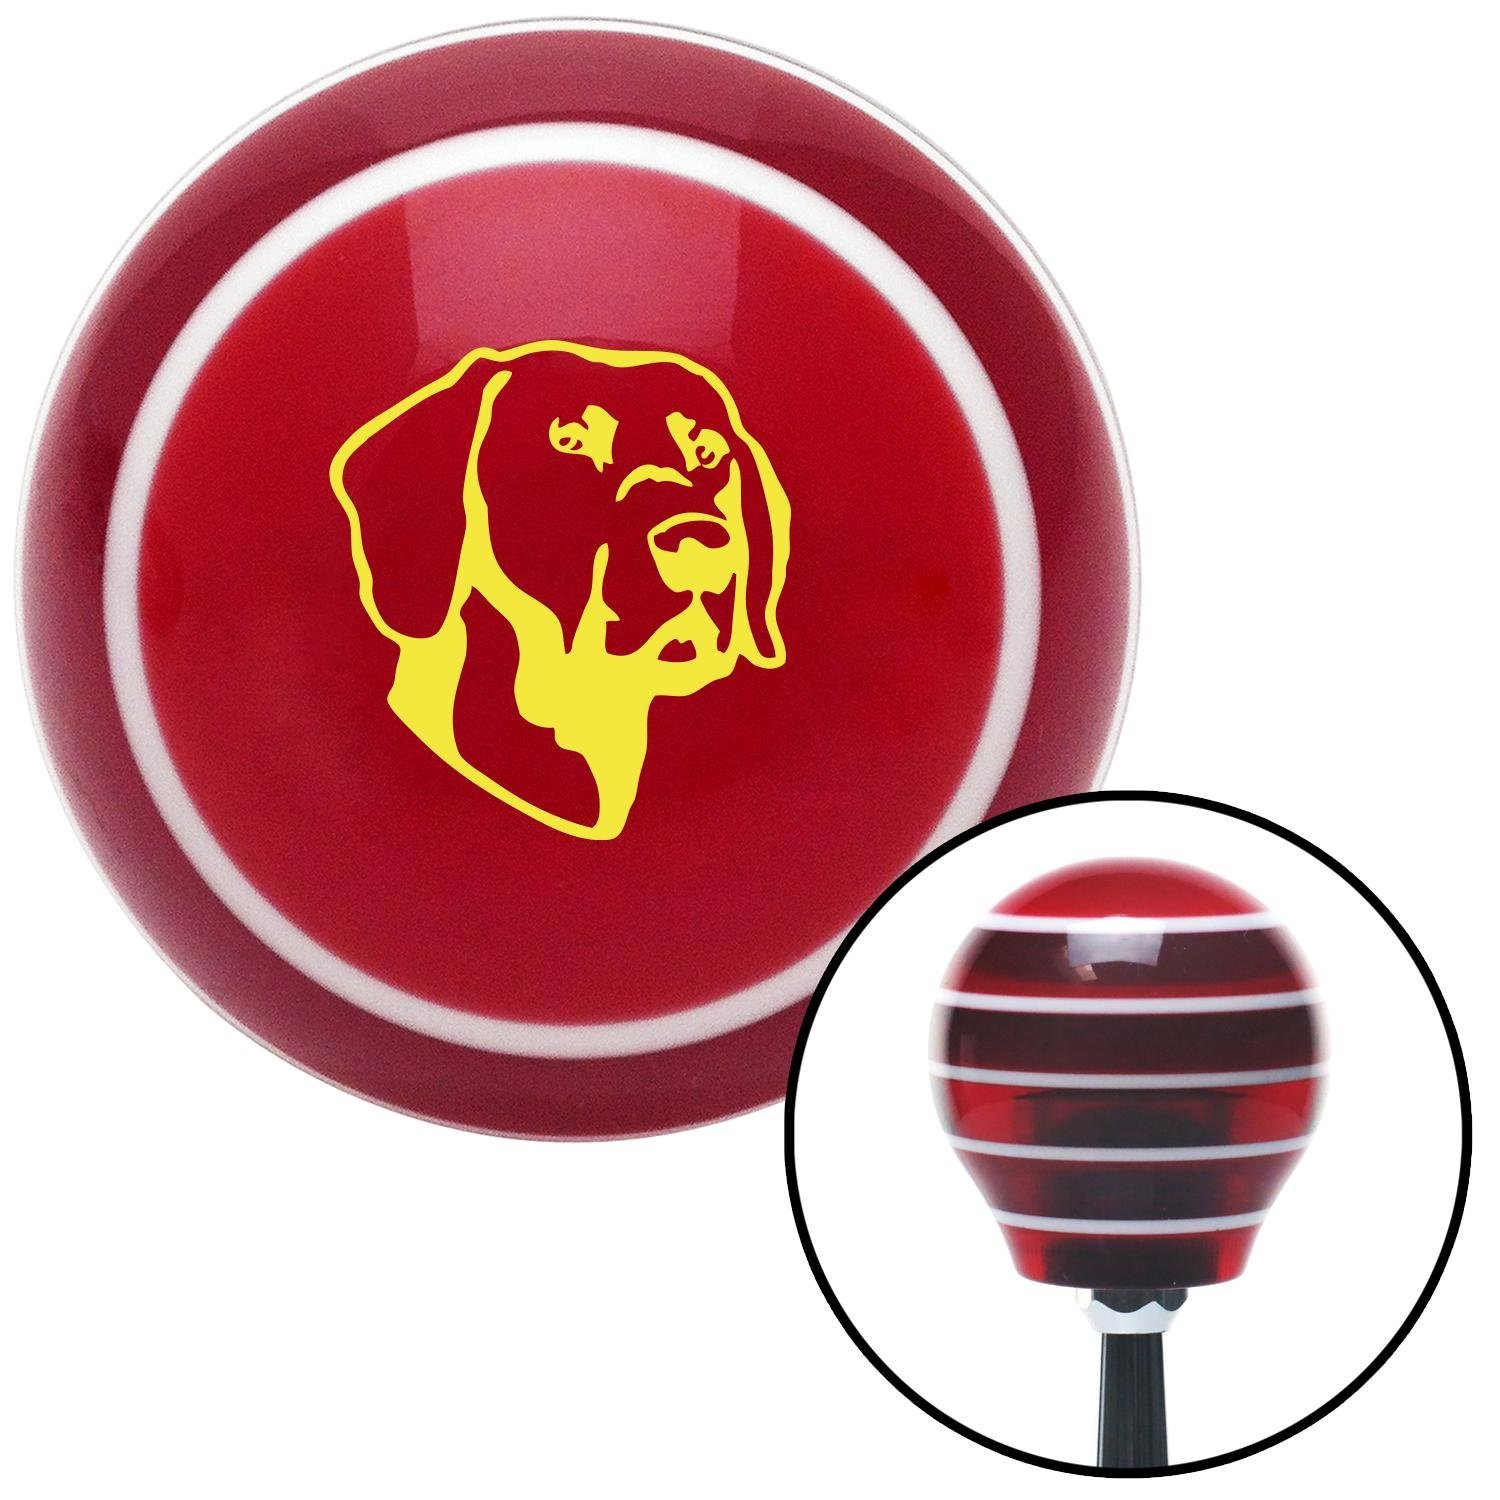 American Shifter 111451 Red Stripe Shift Knob with M16 x 1.5 Insert Yellow Dog